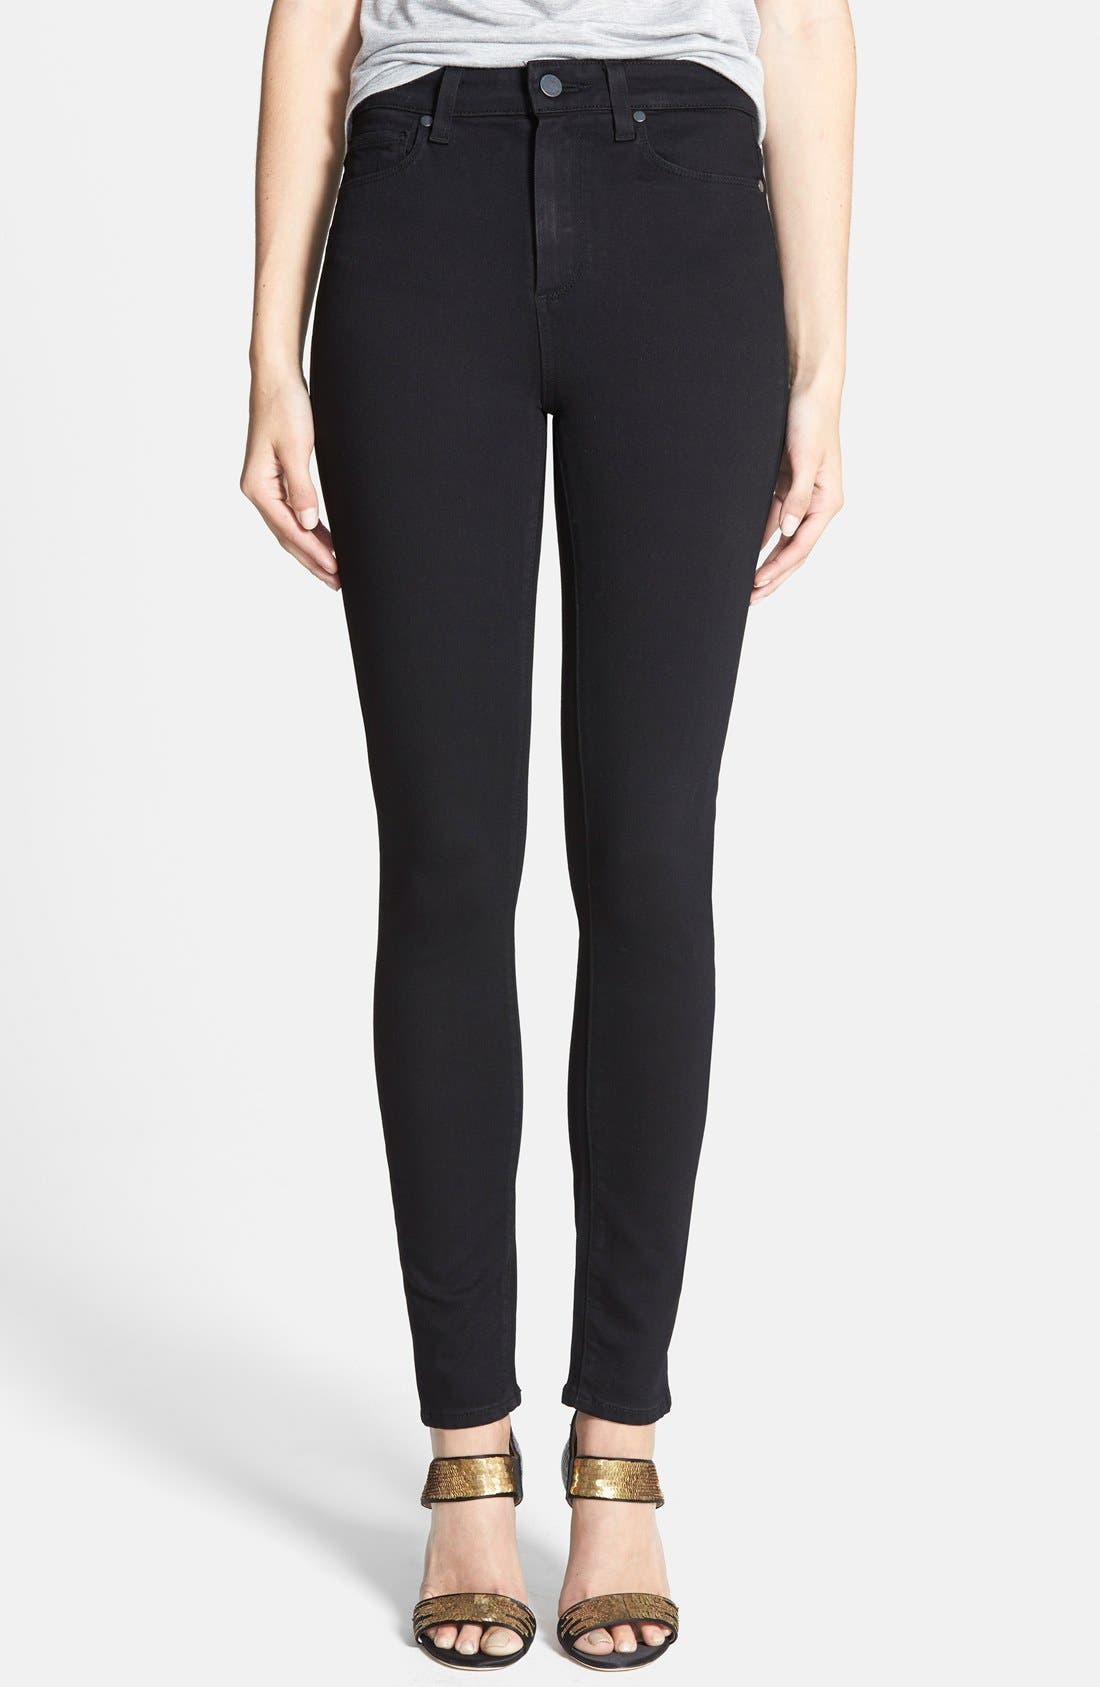 PAIGE Margot High Waist Ultra Skinny Jeans